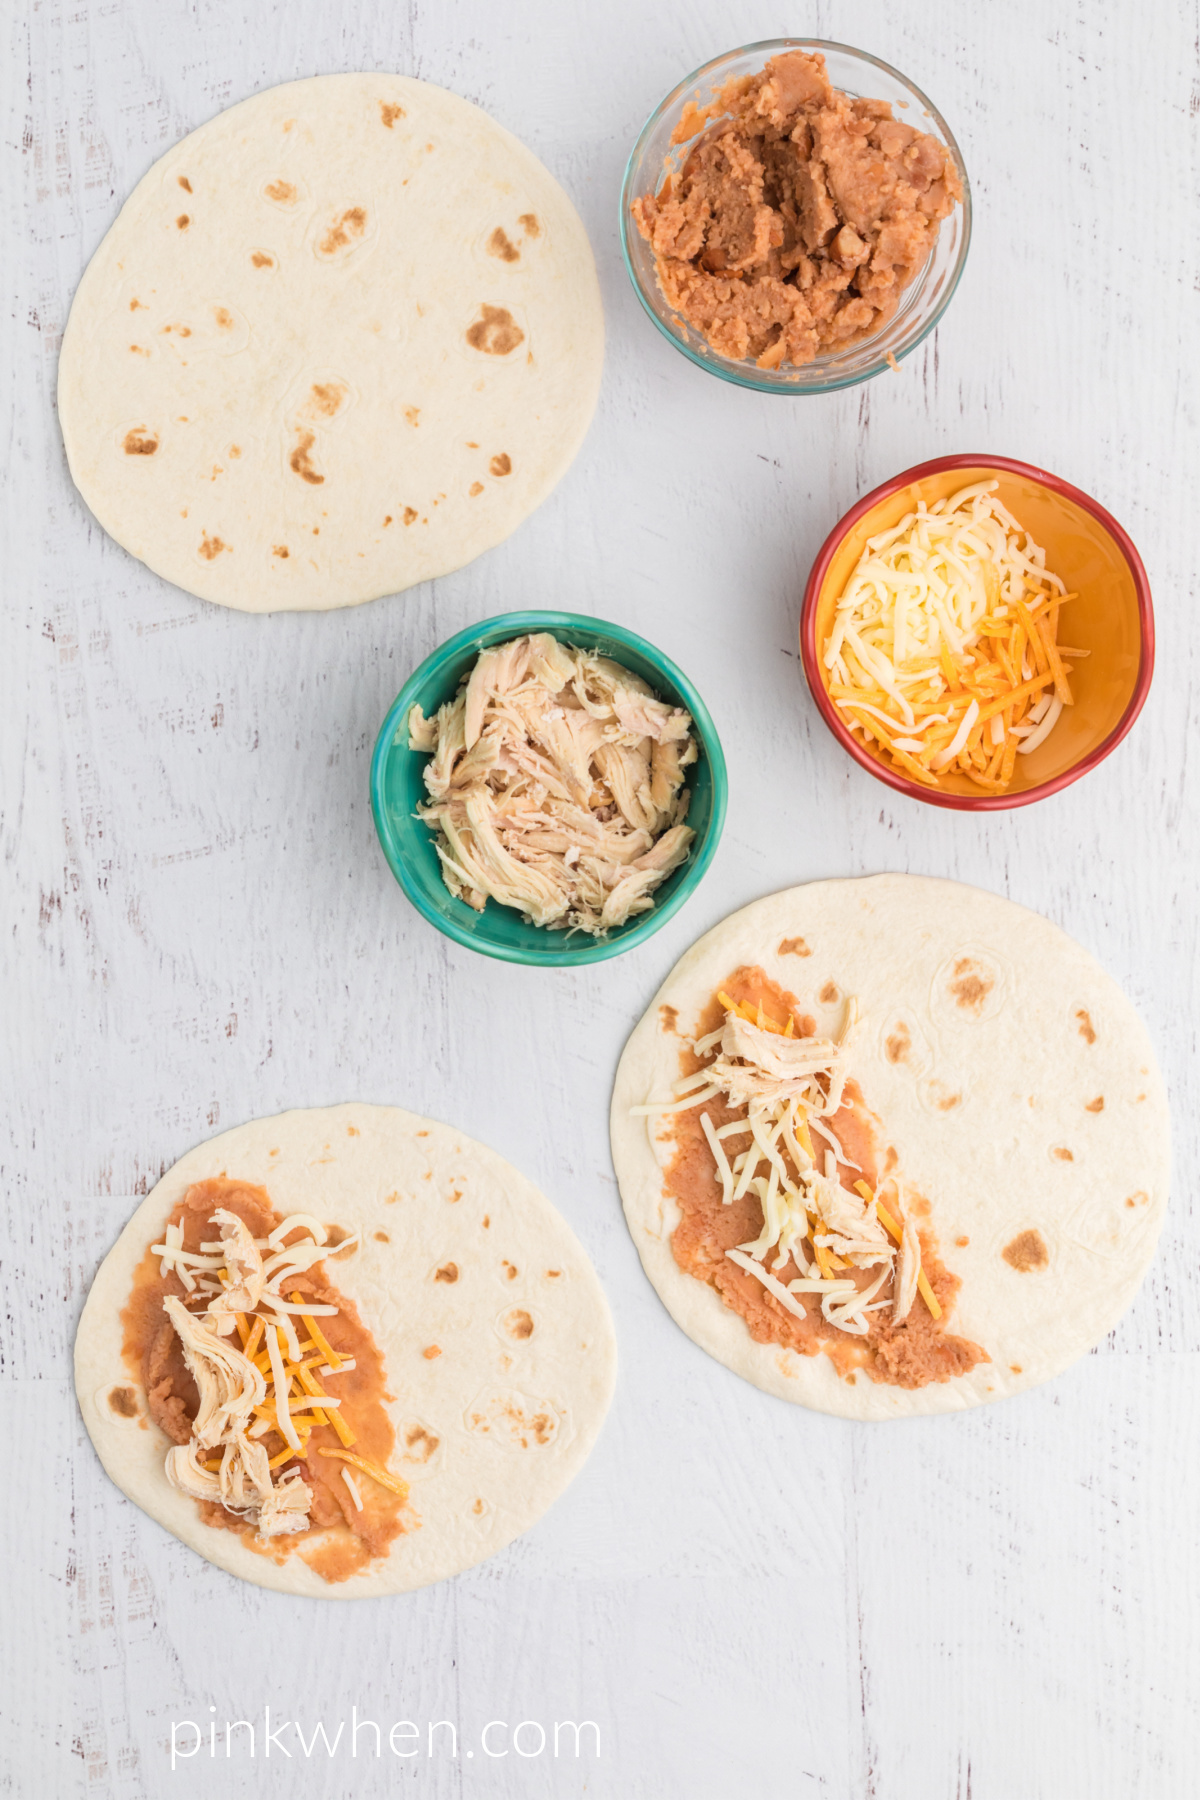 Tortillas with refried beans and shredded cheese on top.